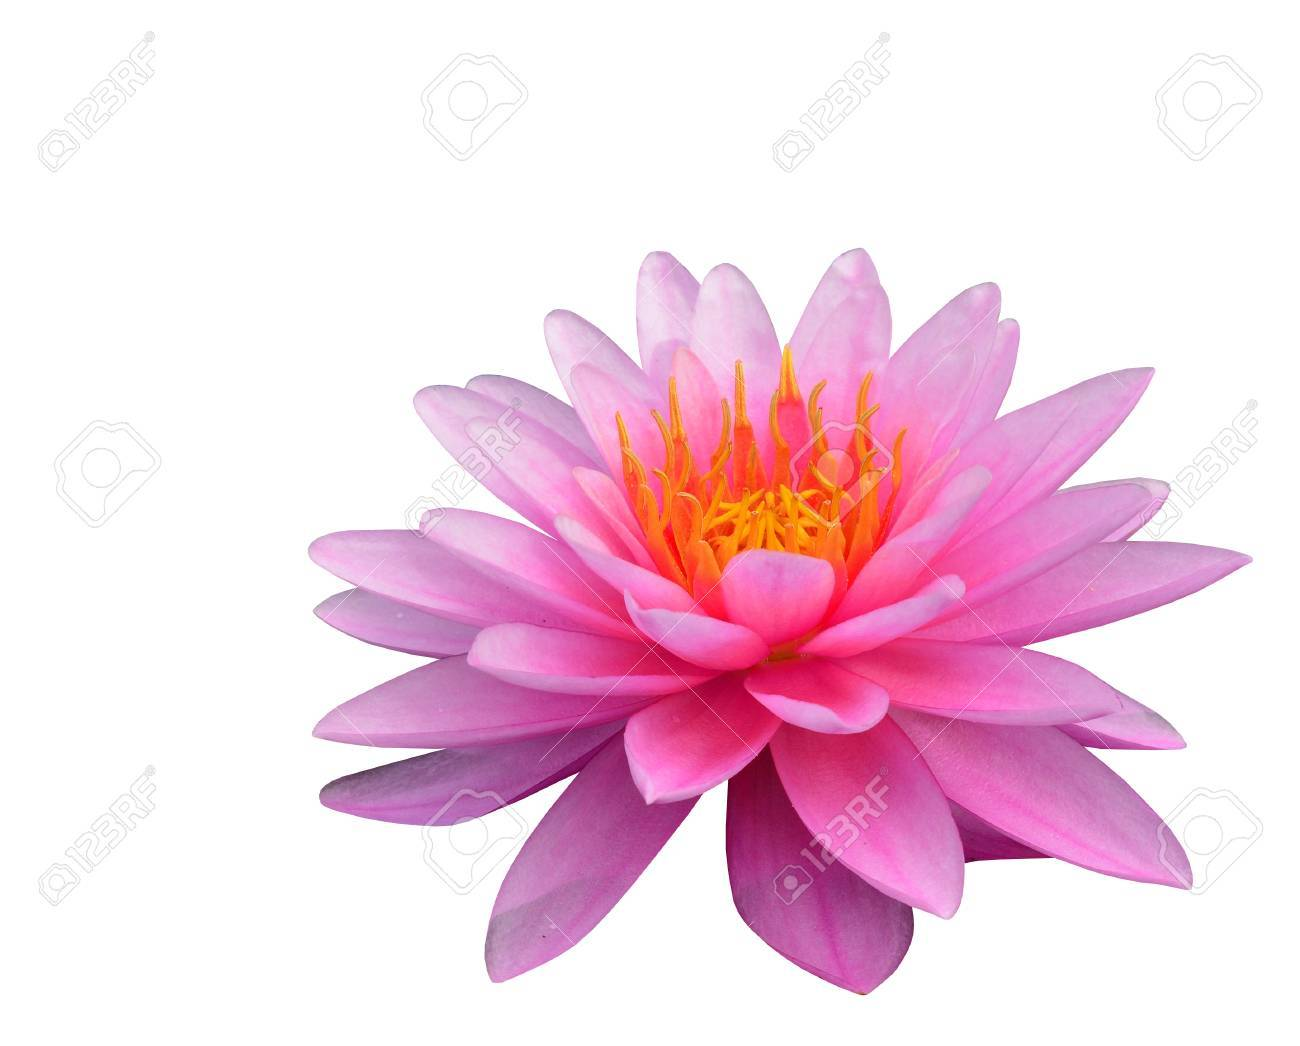 Beautiful Pink Lotus Flower Isolated On White Background Stock Photo